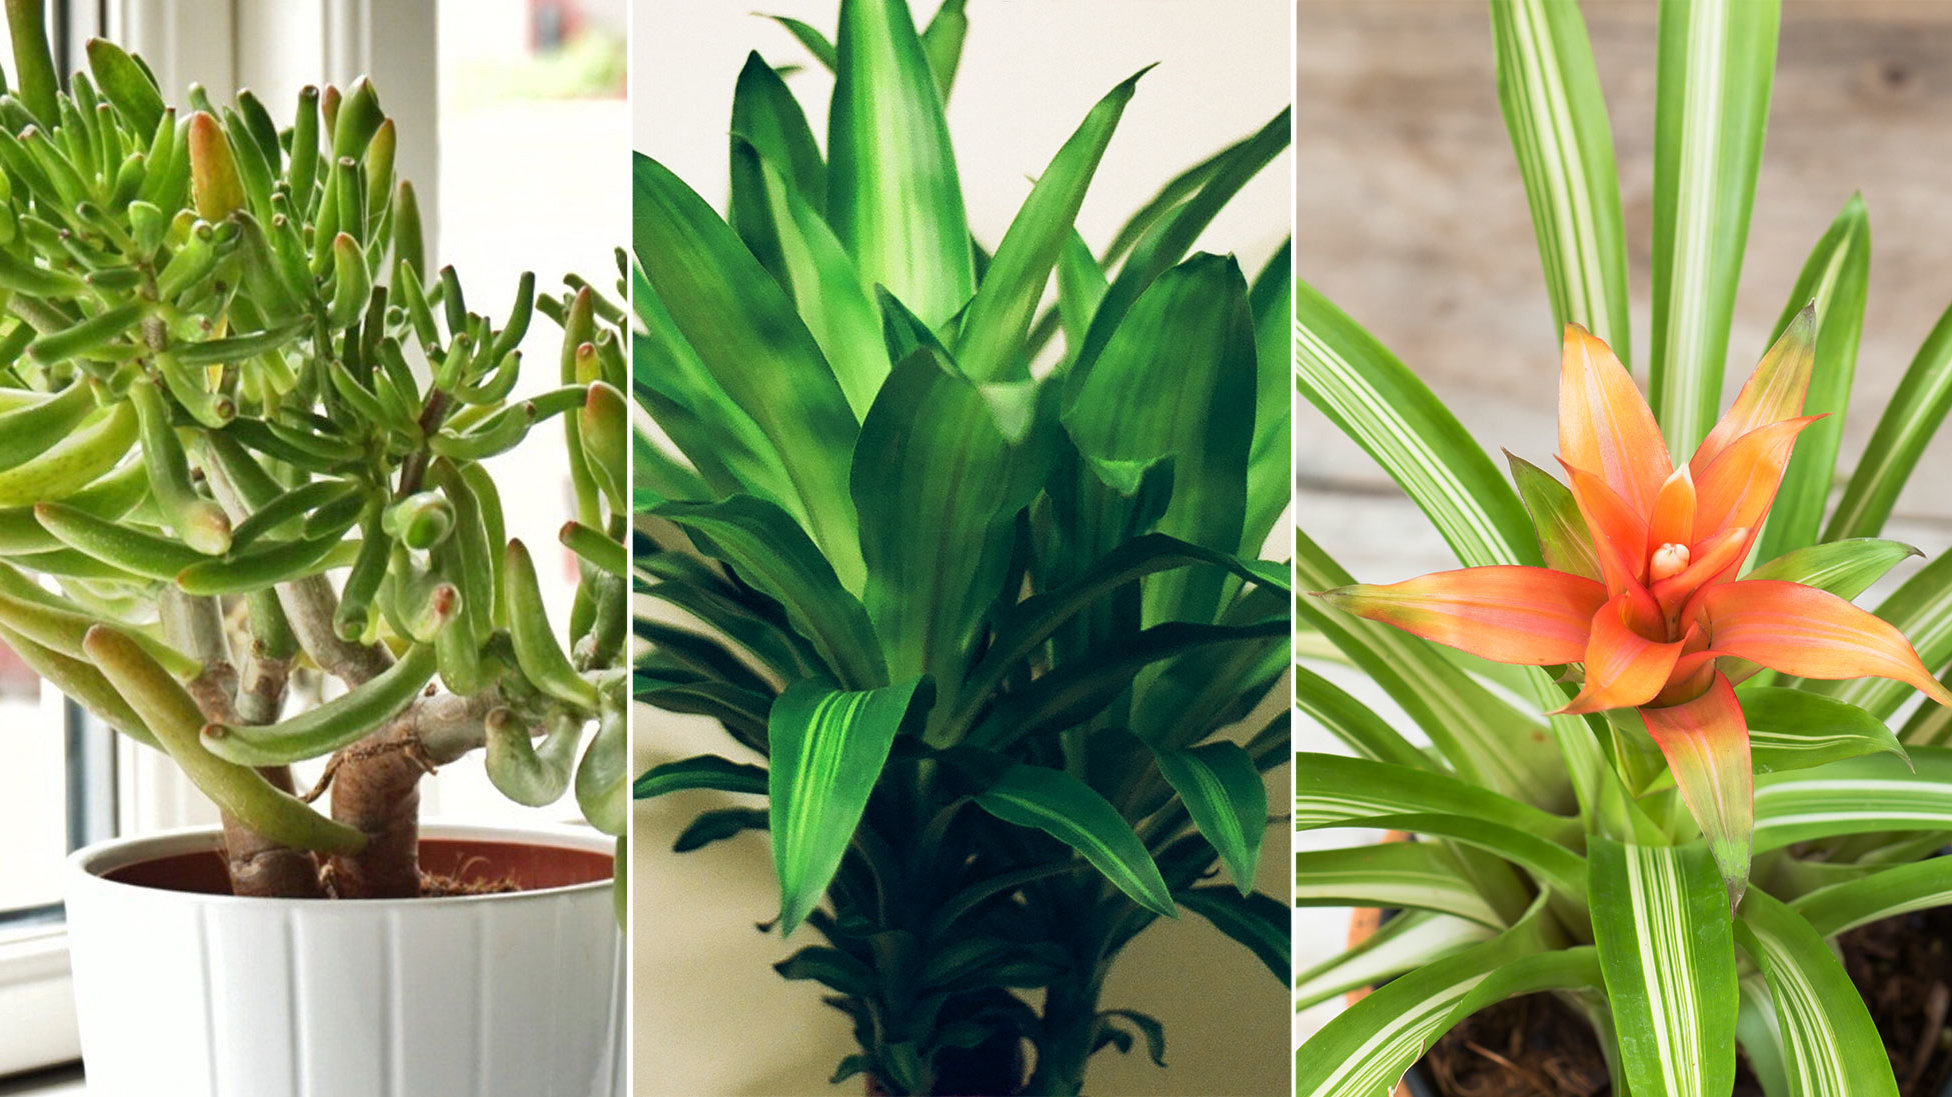 House Plants air purifying indoor plants - health - health